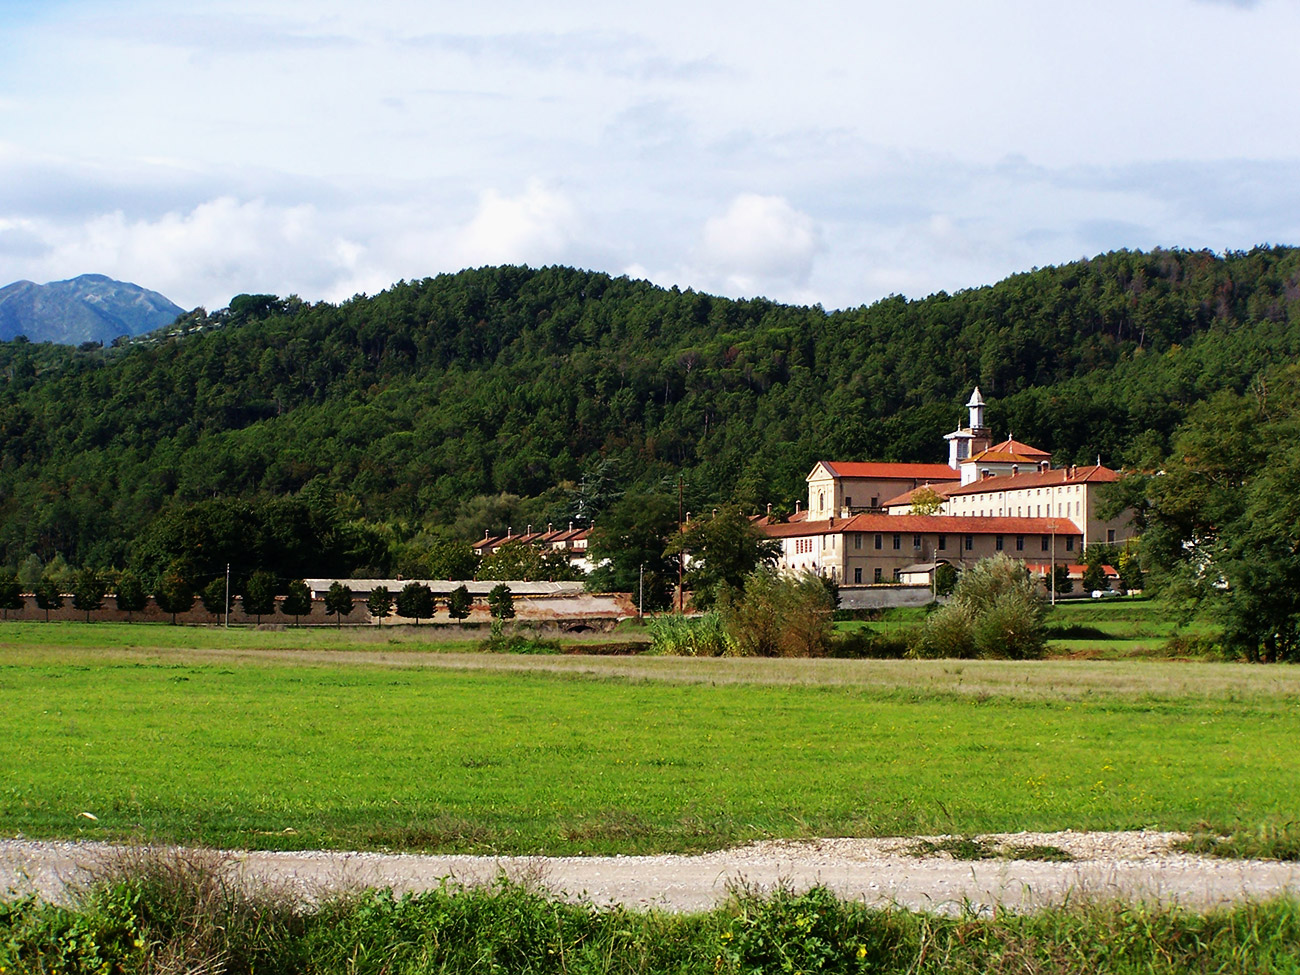 A photograph of a green luscious landscape. In the right third tucked along a hillside is a monastery with a red-tiled roof.